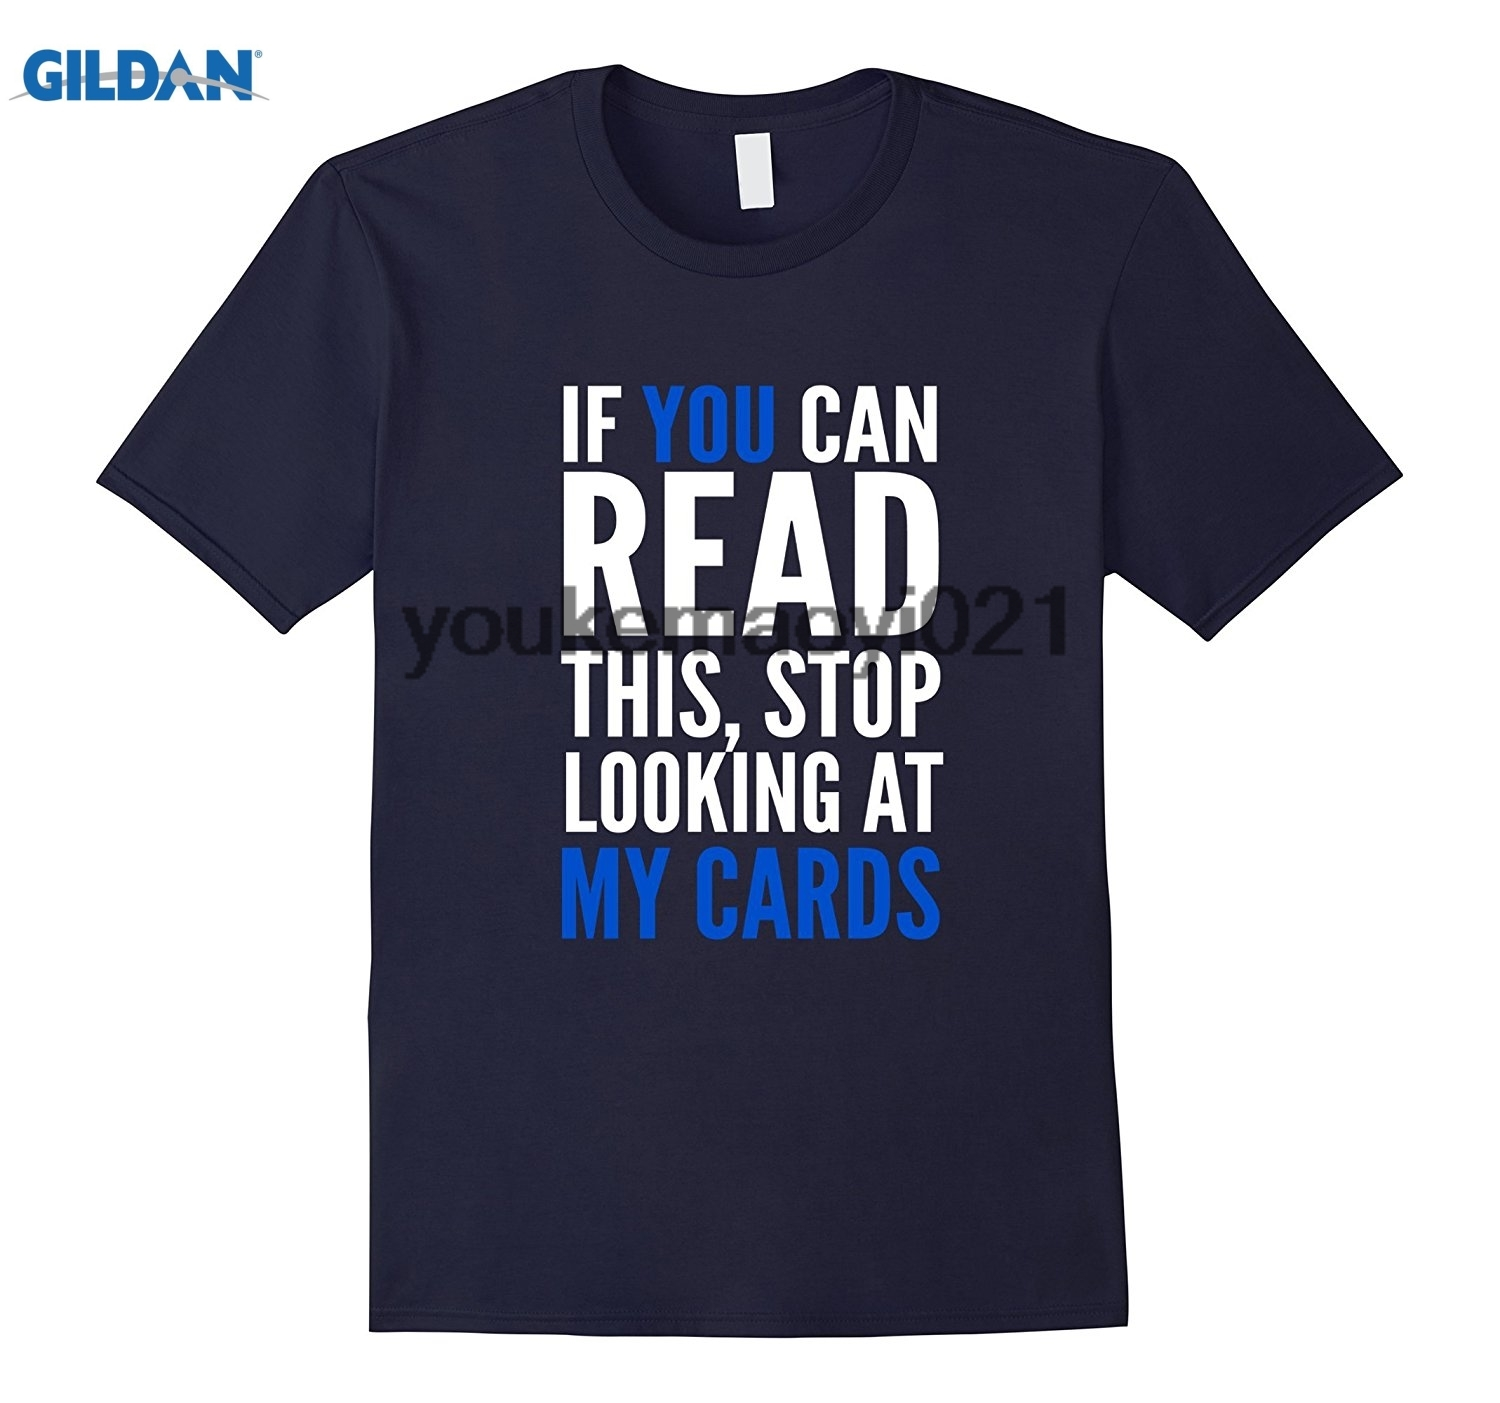 GILDAN If You Can Read This Stop Looking At My Cards Poker T-Shirt